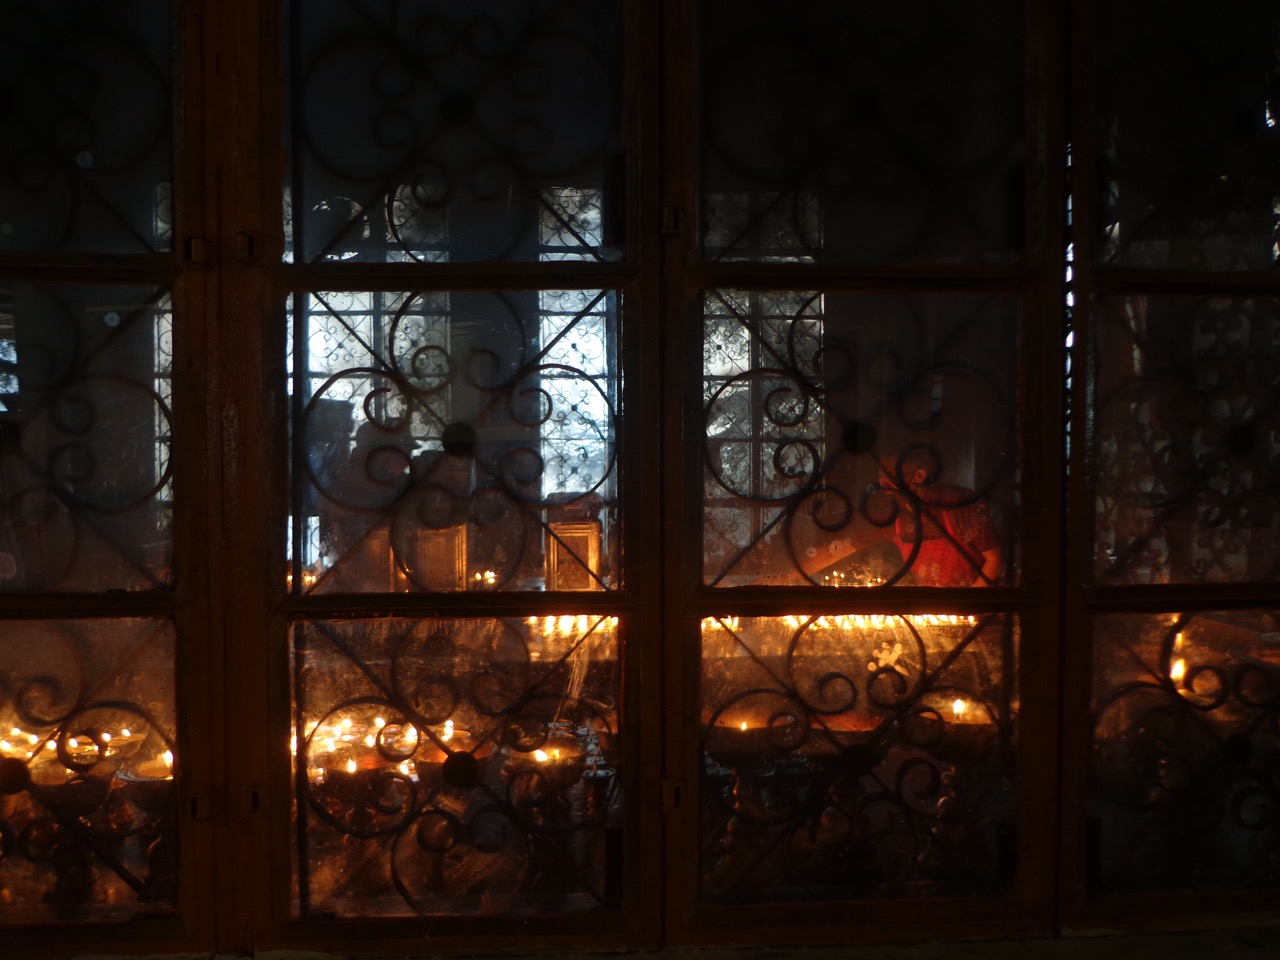 Monks lighting up butter lamps for offering.